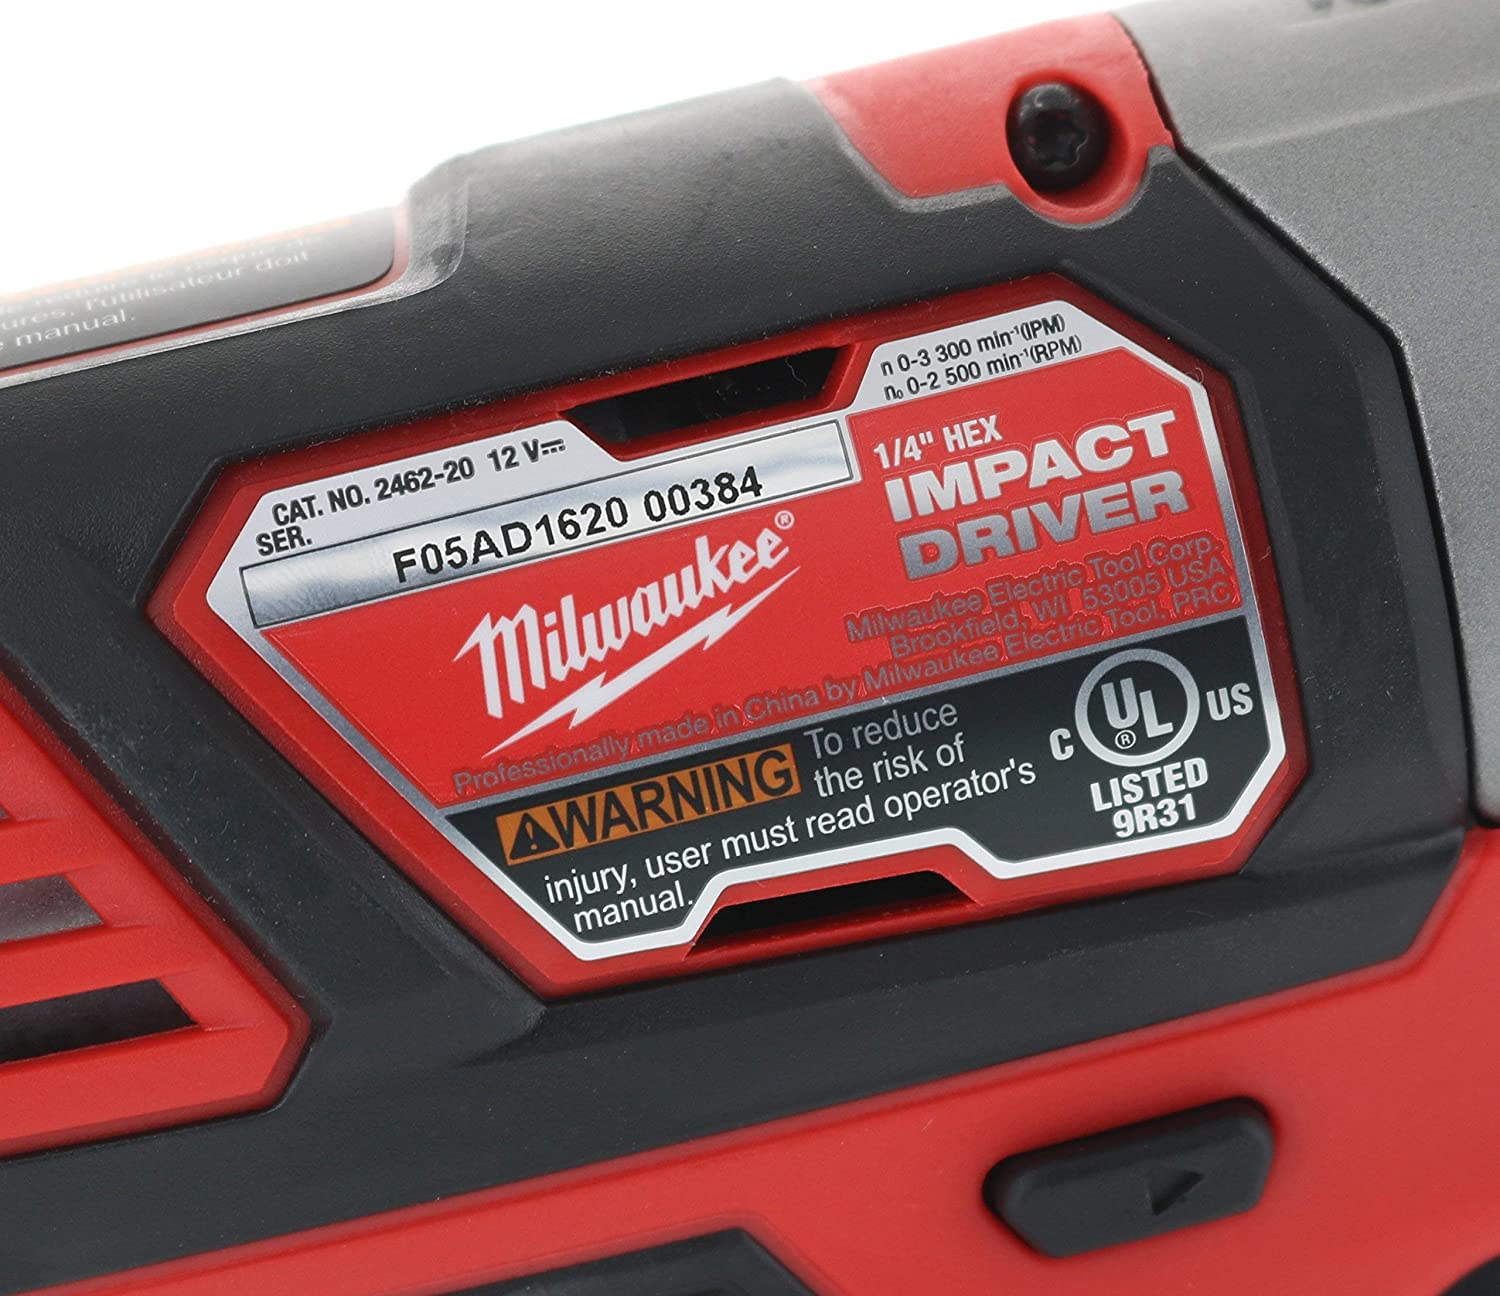 Renewed Battery Not Included, Power Tool Only Milwaukee 2462-20 M12 1//4 Inch Hex Shank 12 Volt Lithium Ion Cordless 2,500 RPM 1,000 Inch Pounds Impact Driver w// LED Light and Fuel Gauge